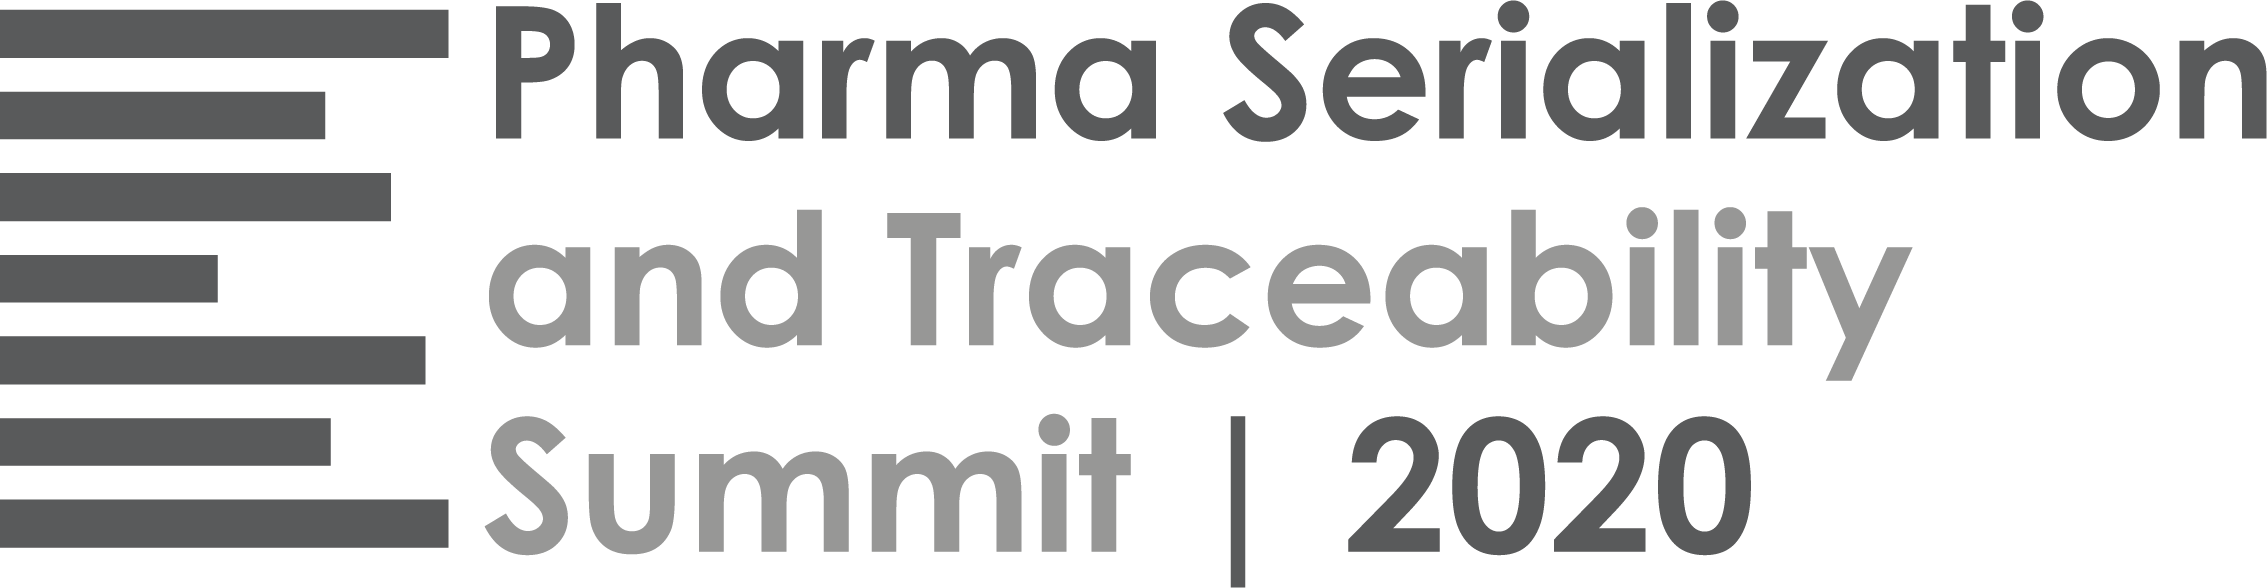 Pharma Serialization and Traceability Summit 2020